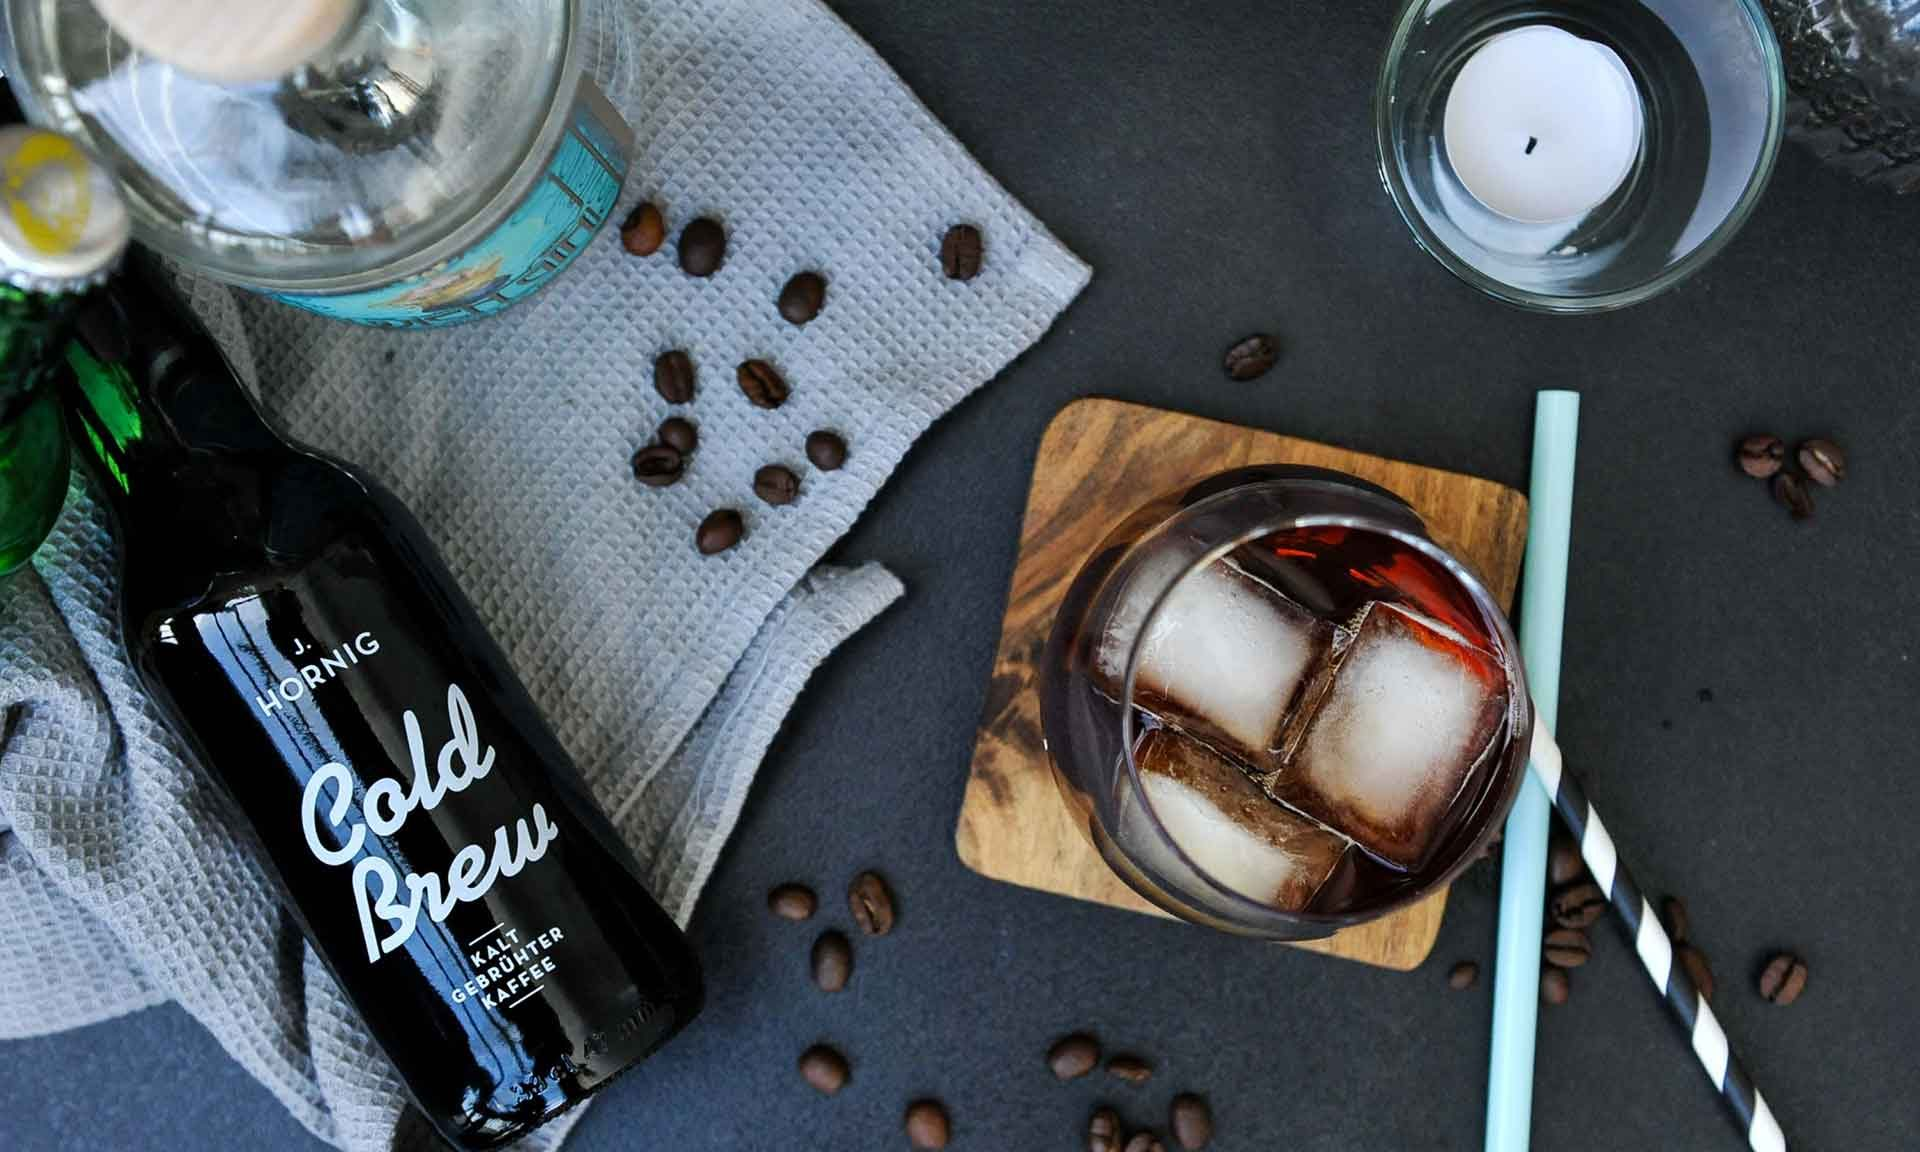 Cold Brew Cocktail, Photos by andersgsund